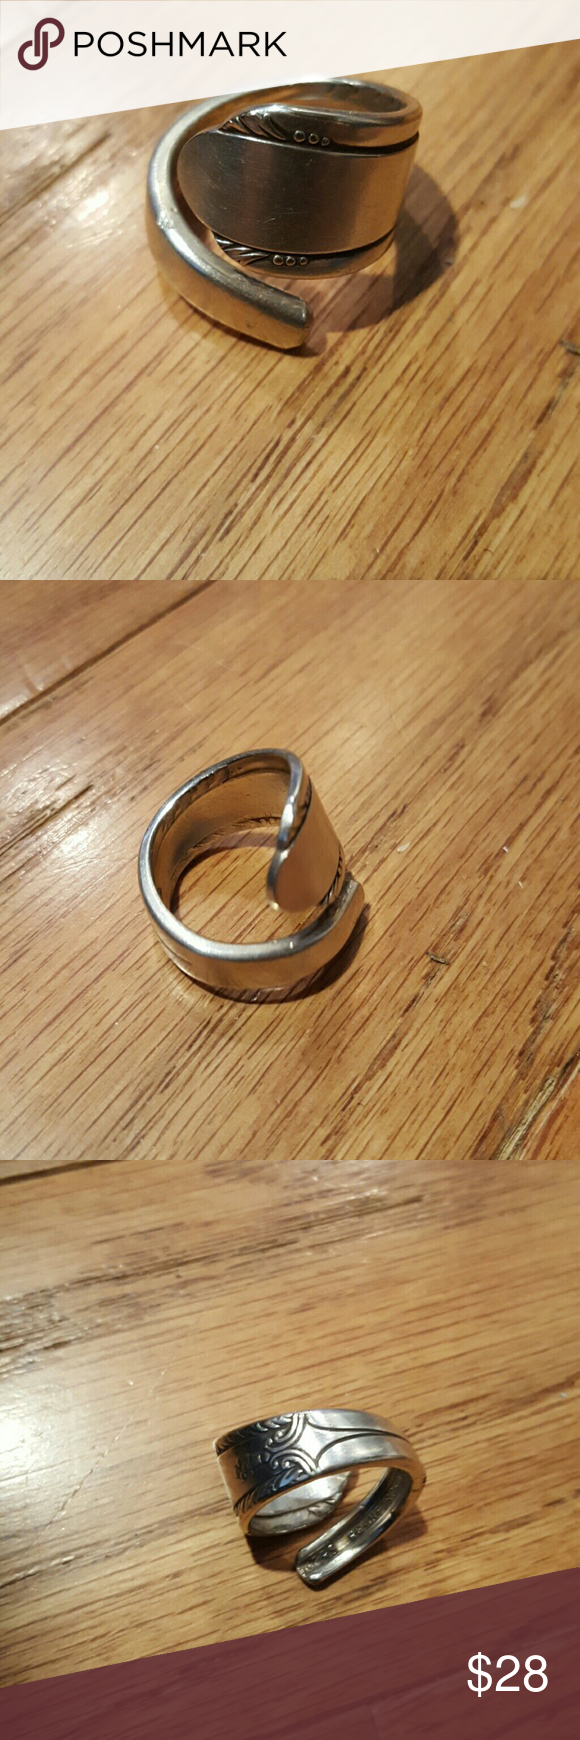 Handmade Custom Size Simple Design Bulkier Ring Disclaimer These Are Antique Items There Could Be Dings From How Old The Were Before